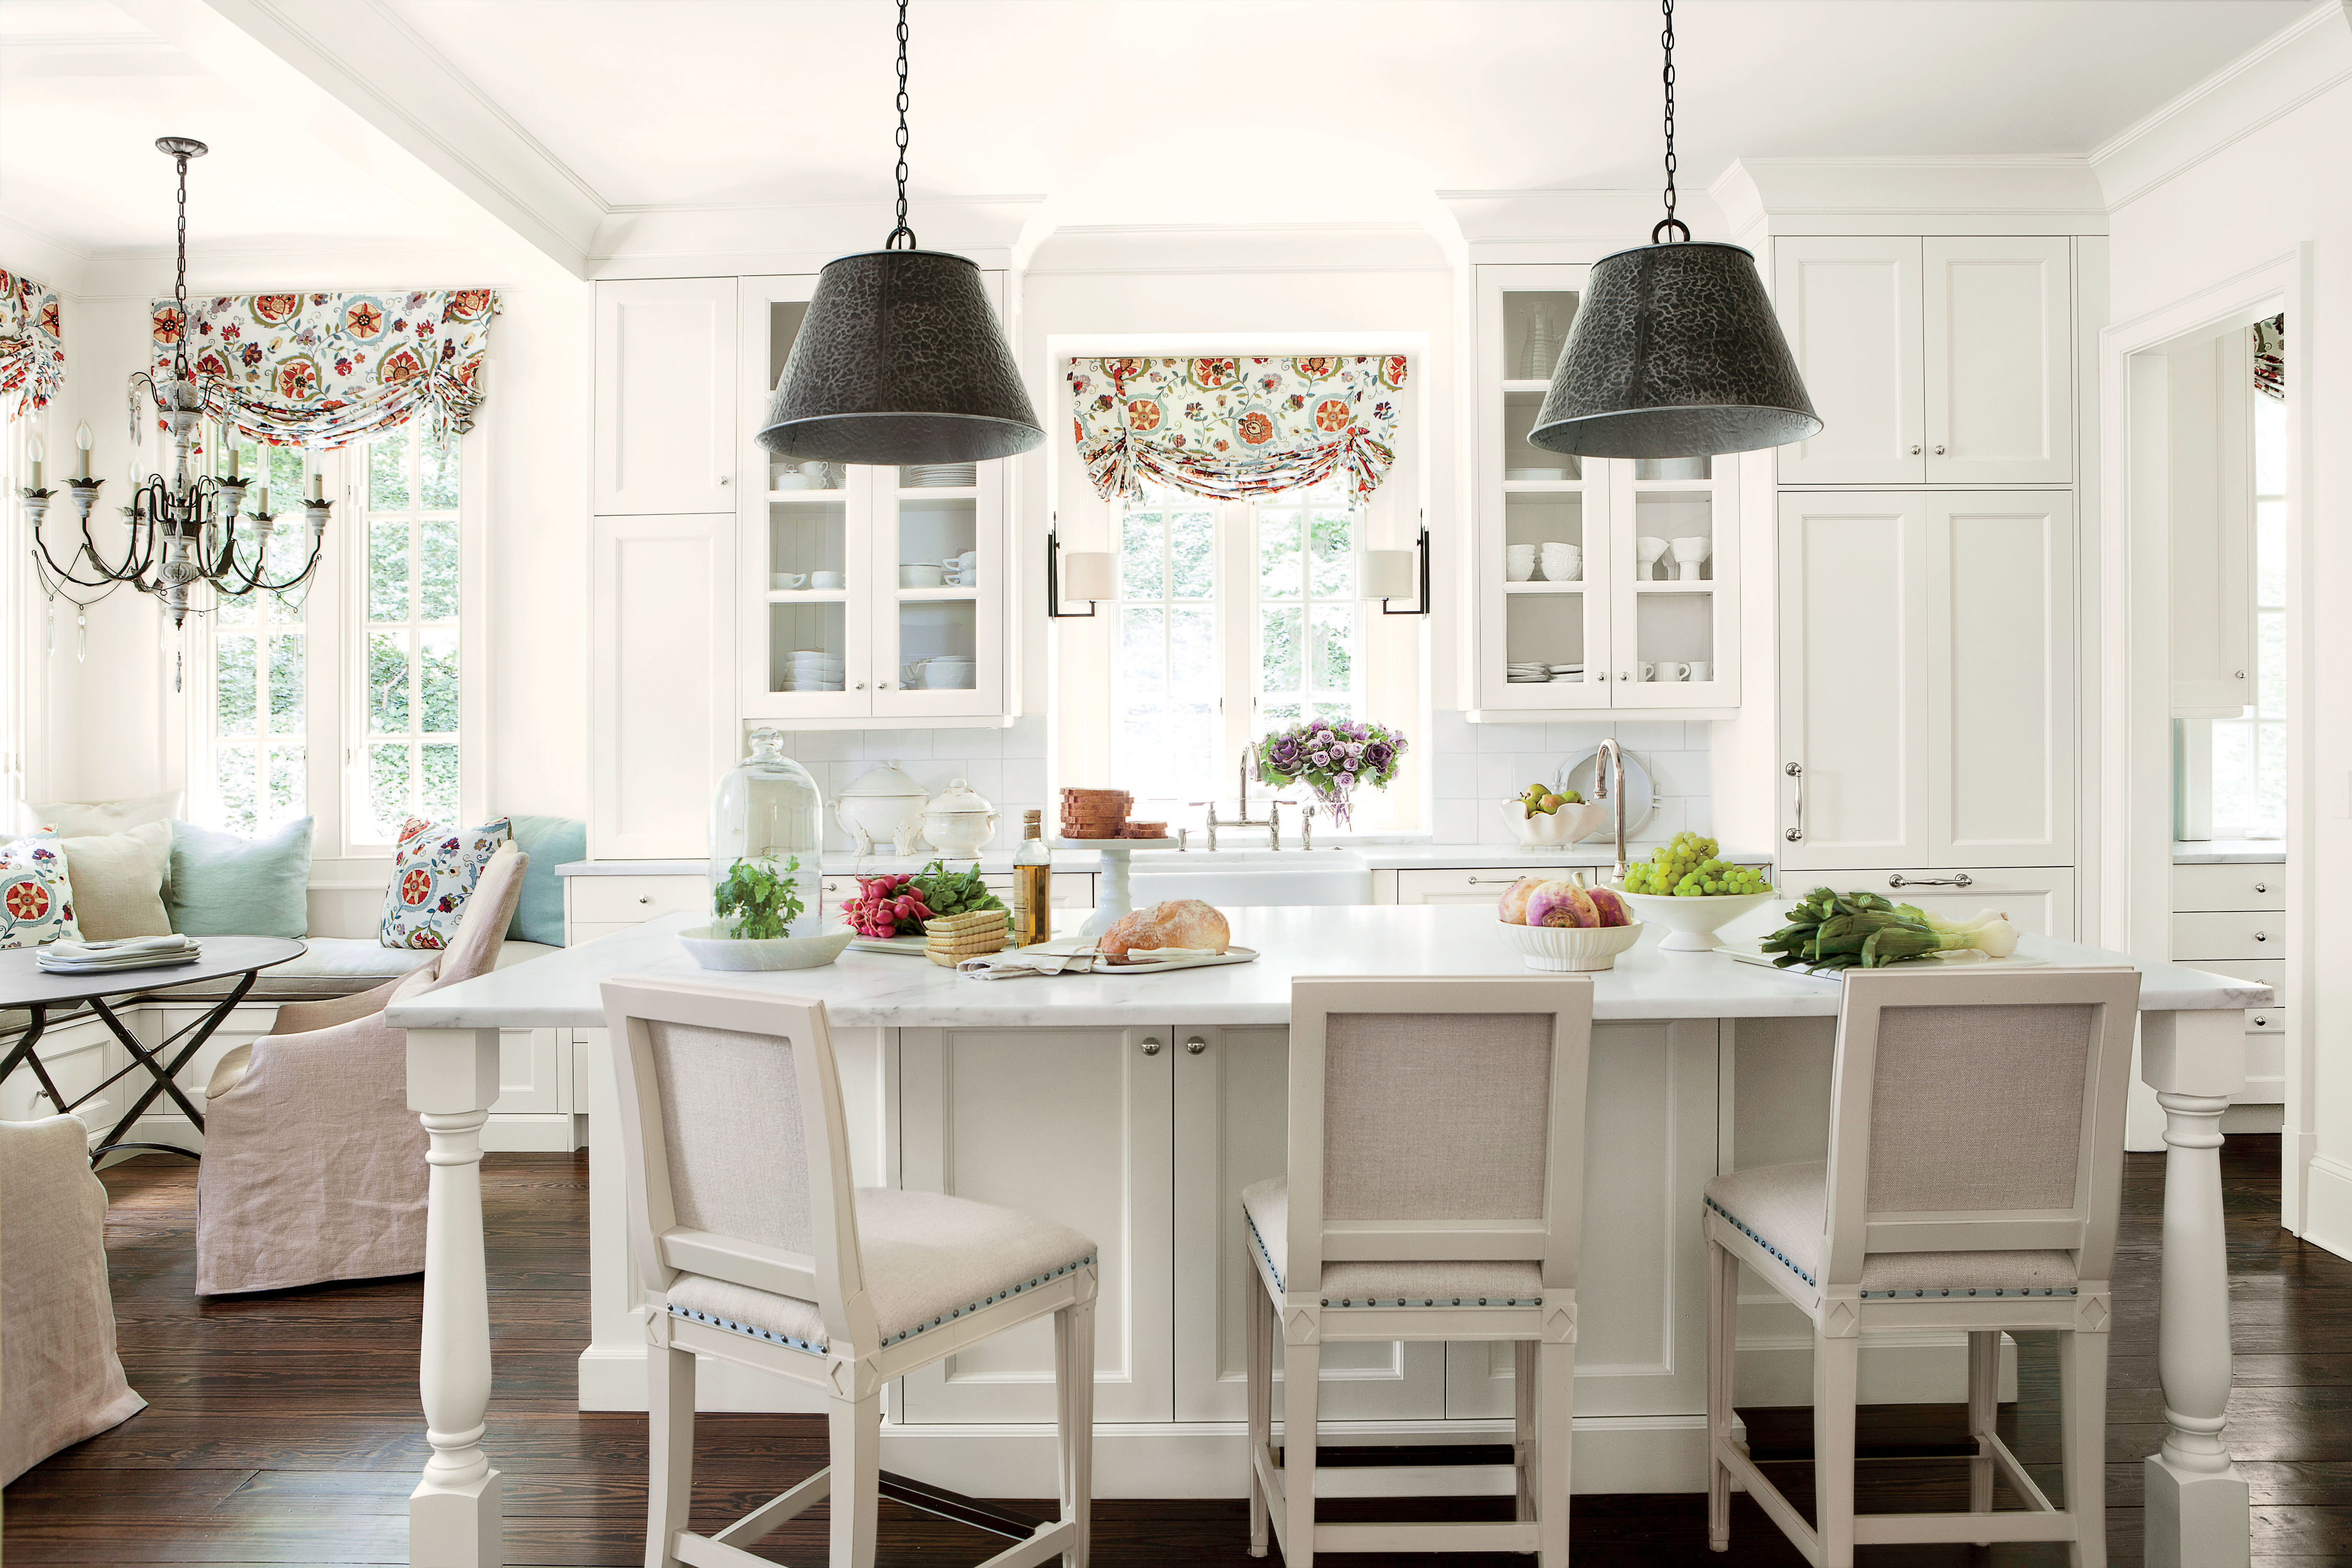 The One Thing to Know Before Choosing a White Backsplash